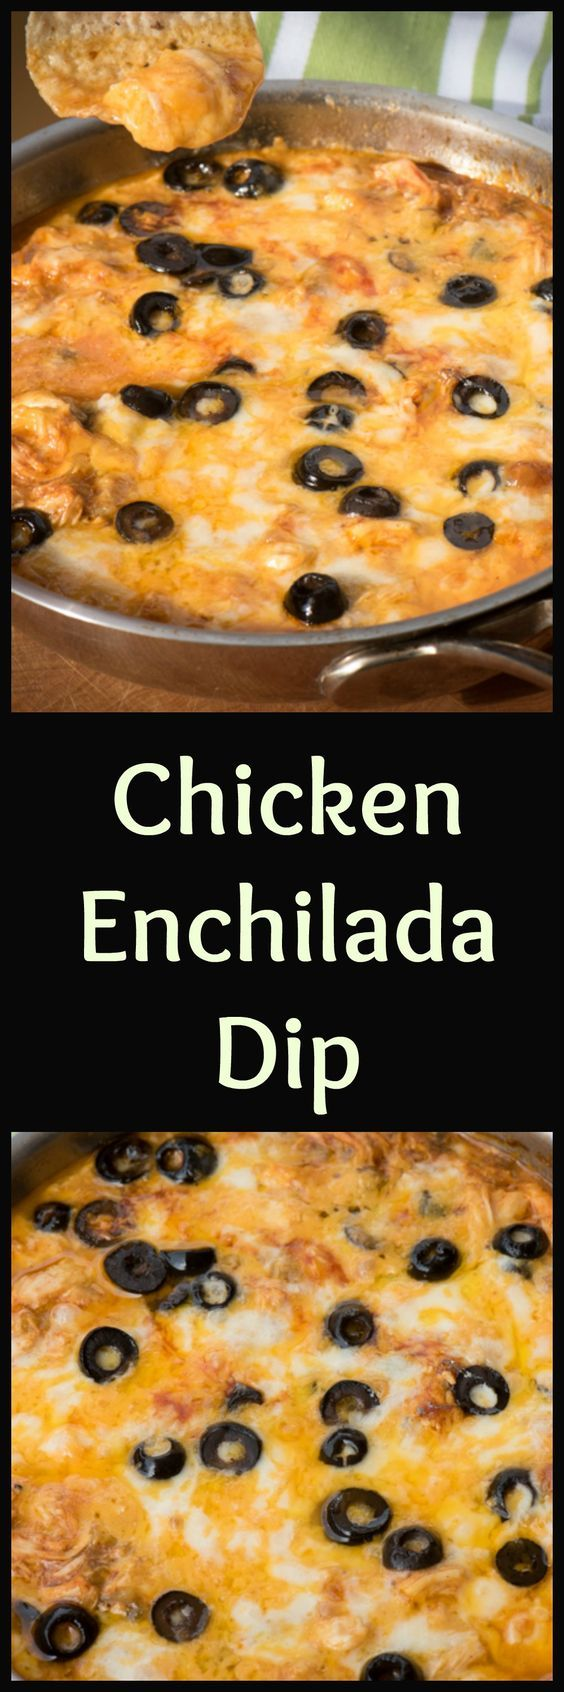 Make chicken enchilada dip ahead of time and pop in hot oven and heat until bubbly. Score! | The Recipe Wench: